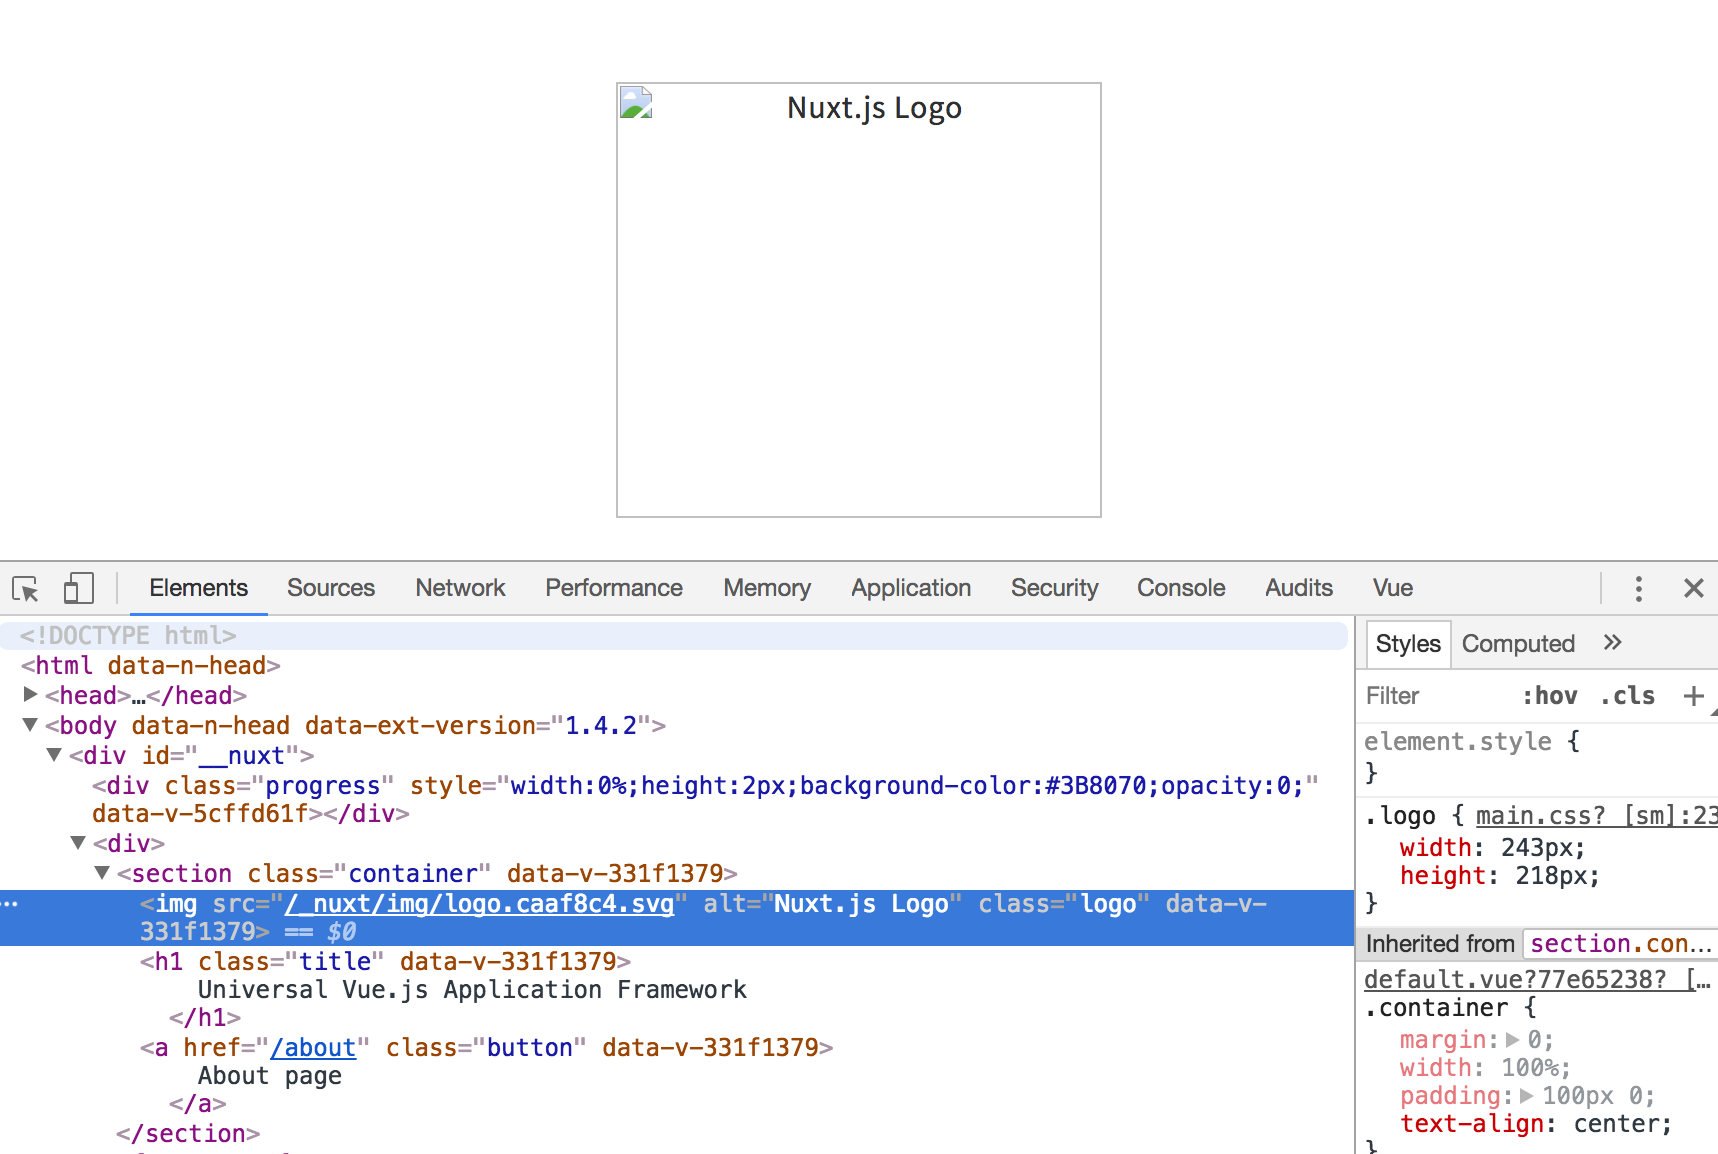 Can't load svg file in nuxt version 1 0 0-rc3 · Issue #1229